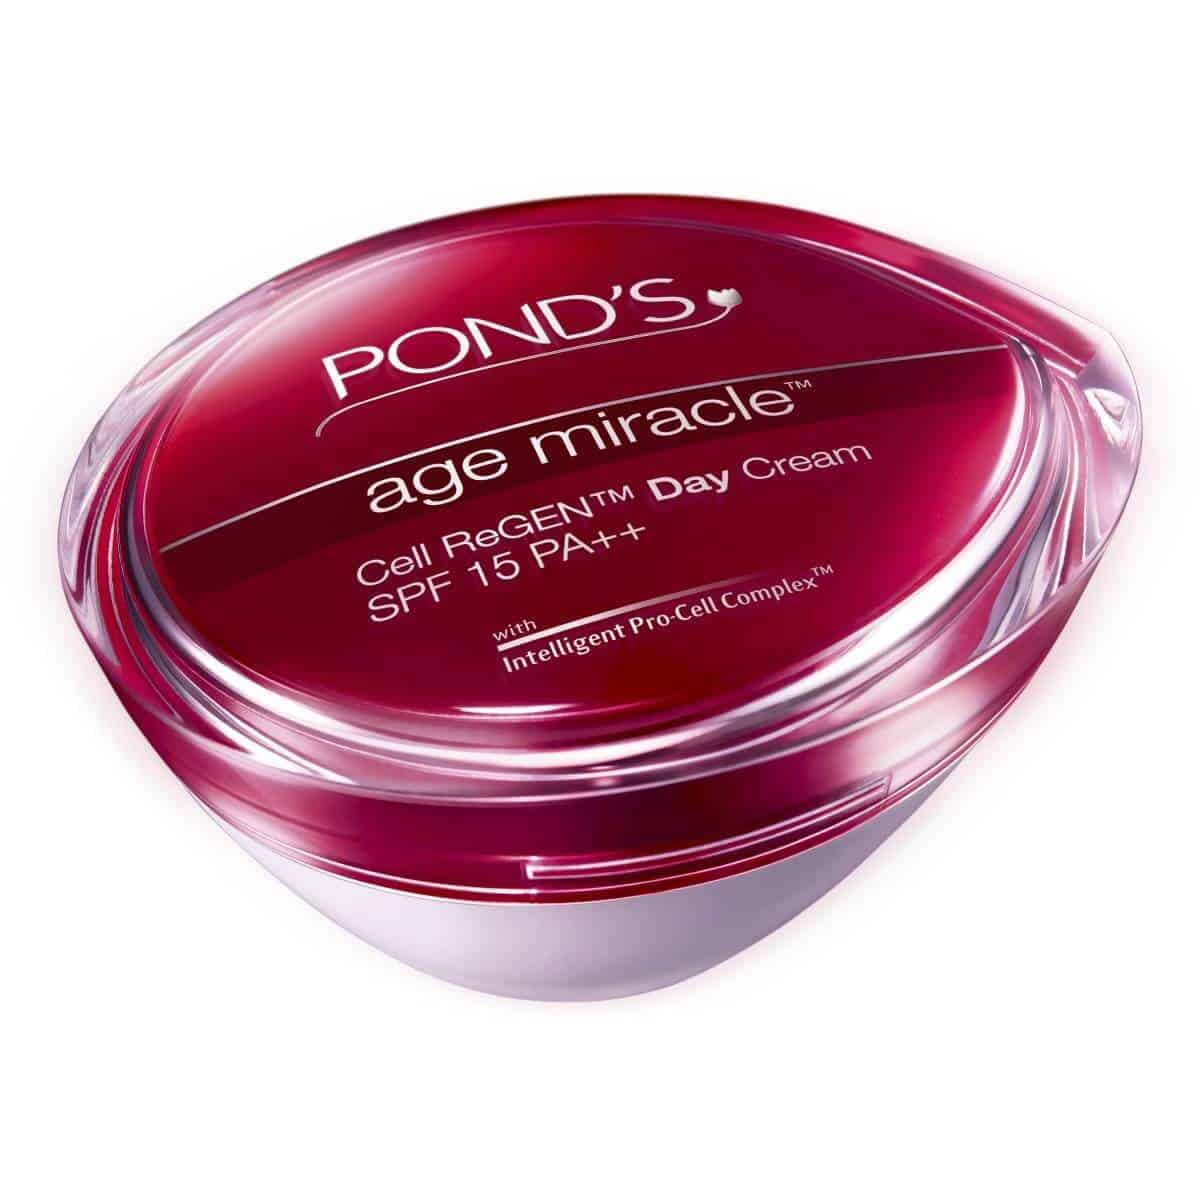 Ponds age miracle review for Ponds products